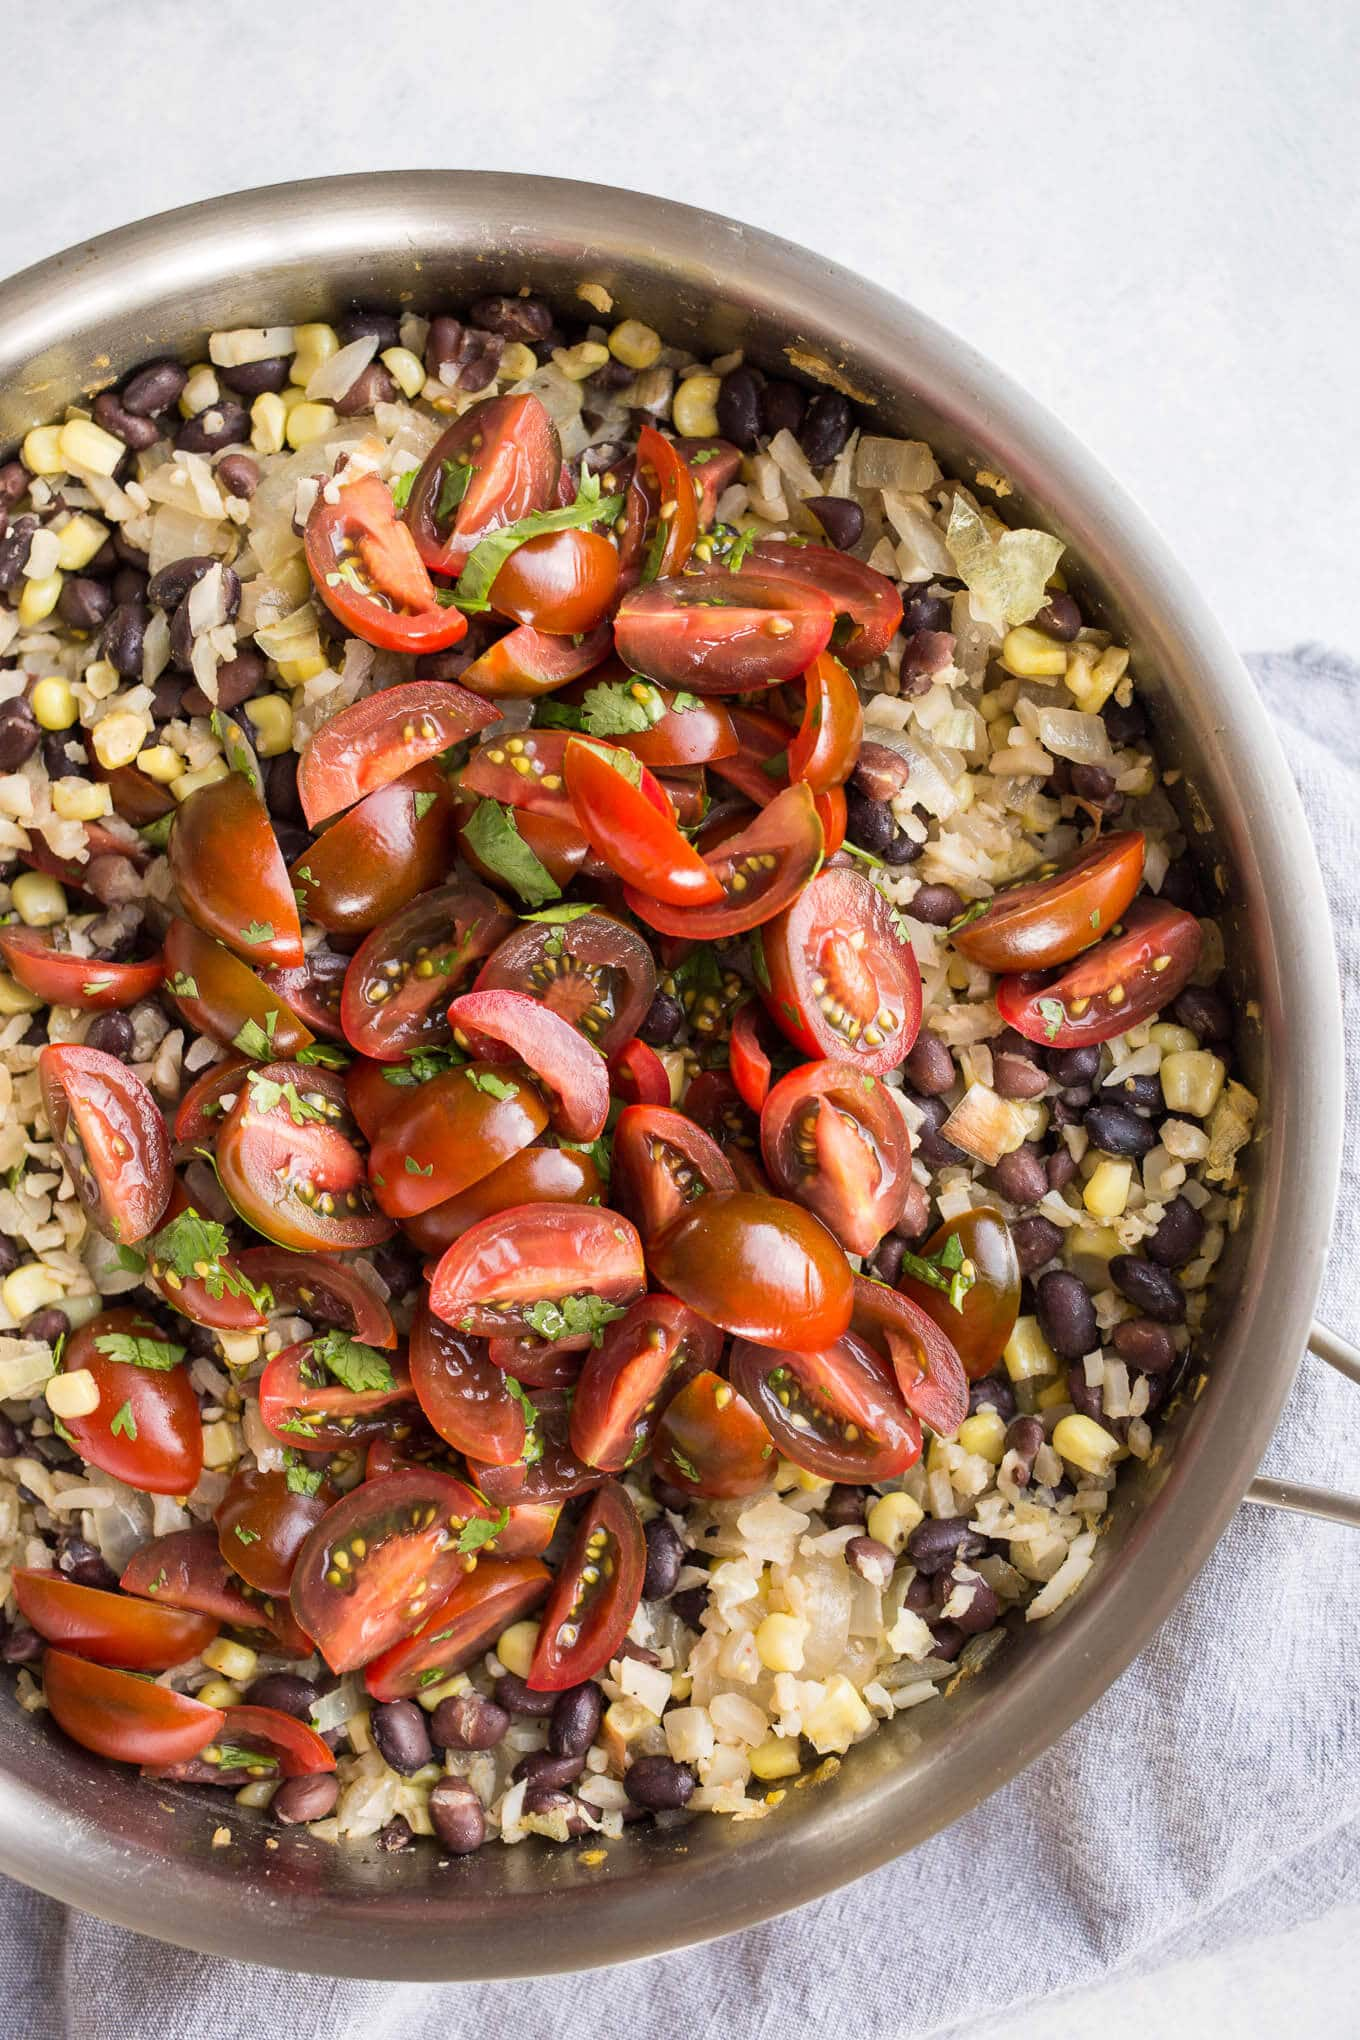 Cauliflower Rice and Black Beans with Corn is an easy vegetarian and gluten-free meal loaded with veggies.